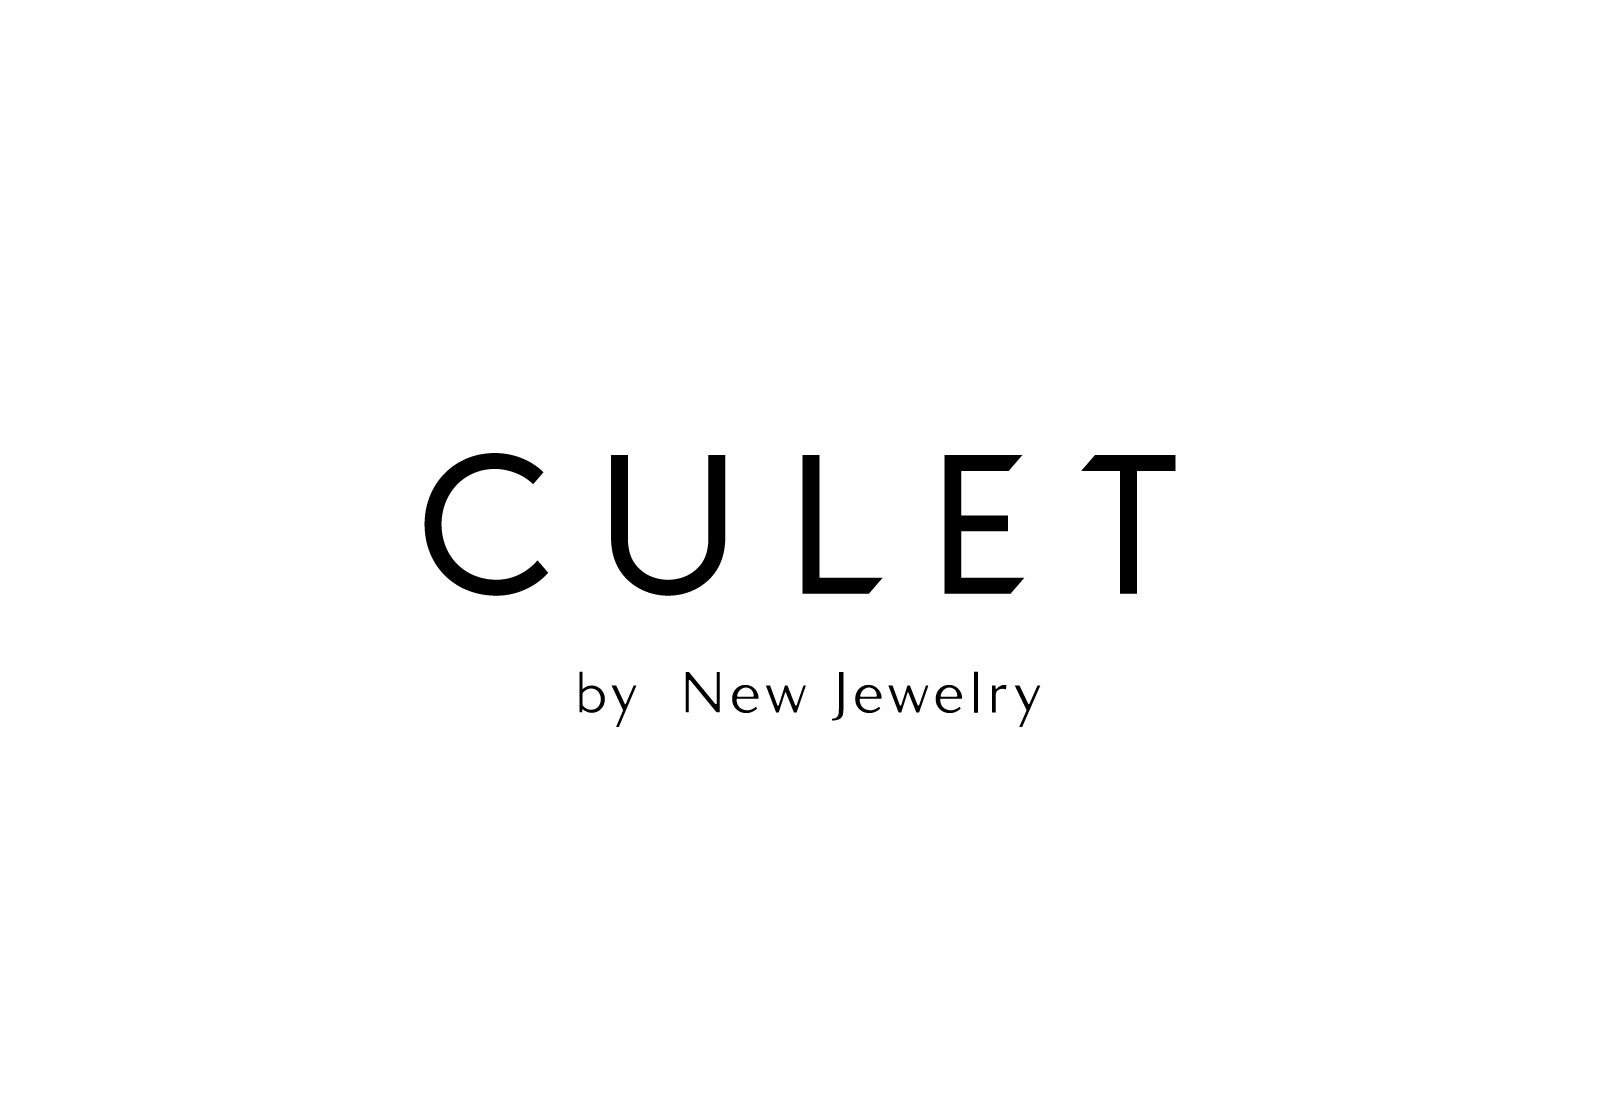 CULET by New Jewelry